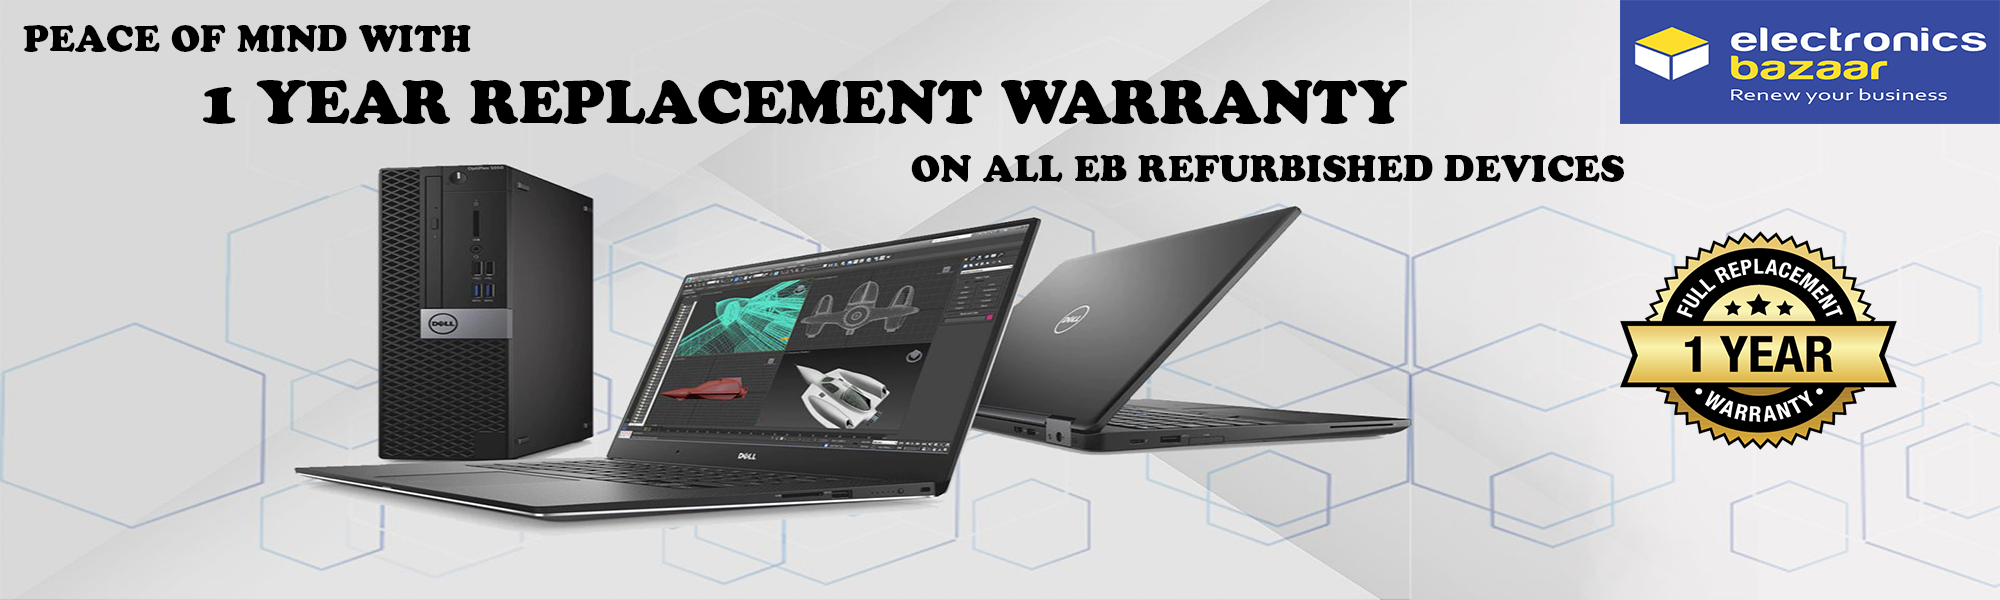 Refurbsihed laptops & desktop computer pc with 1 year replacement warranty